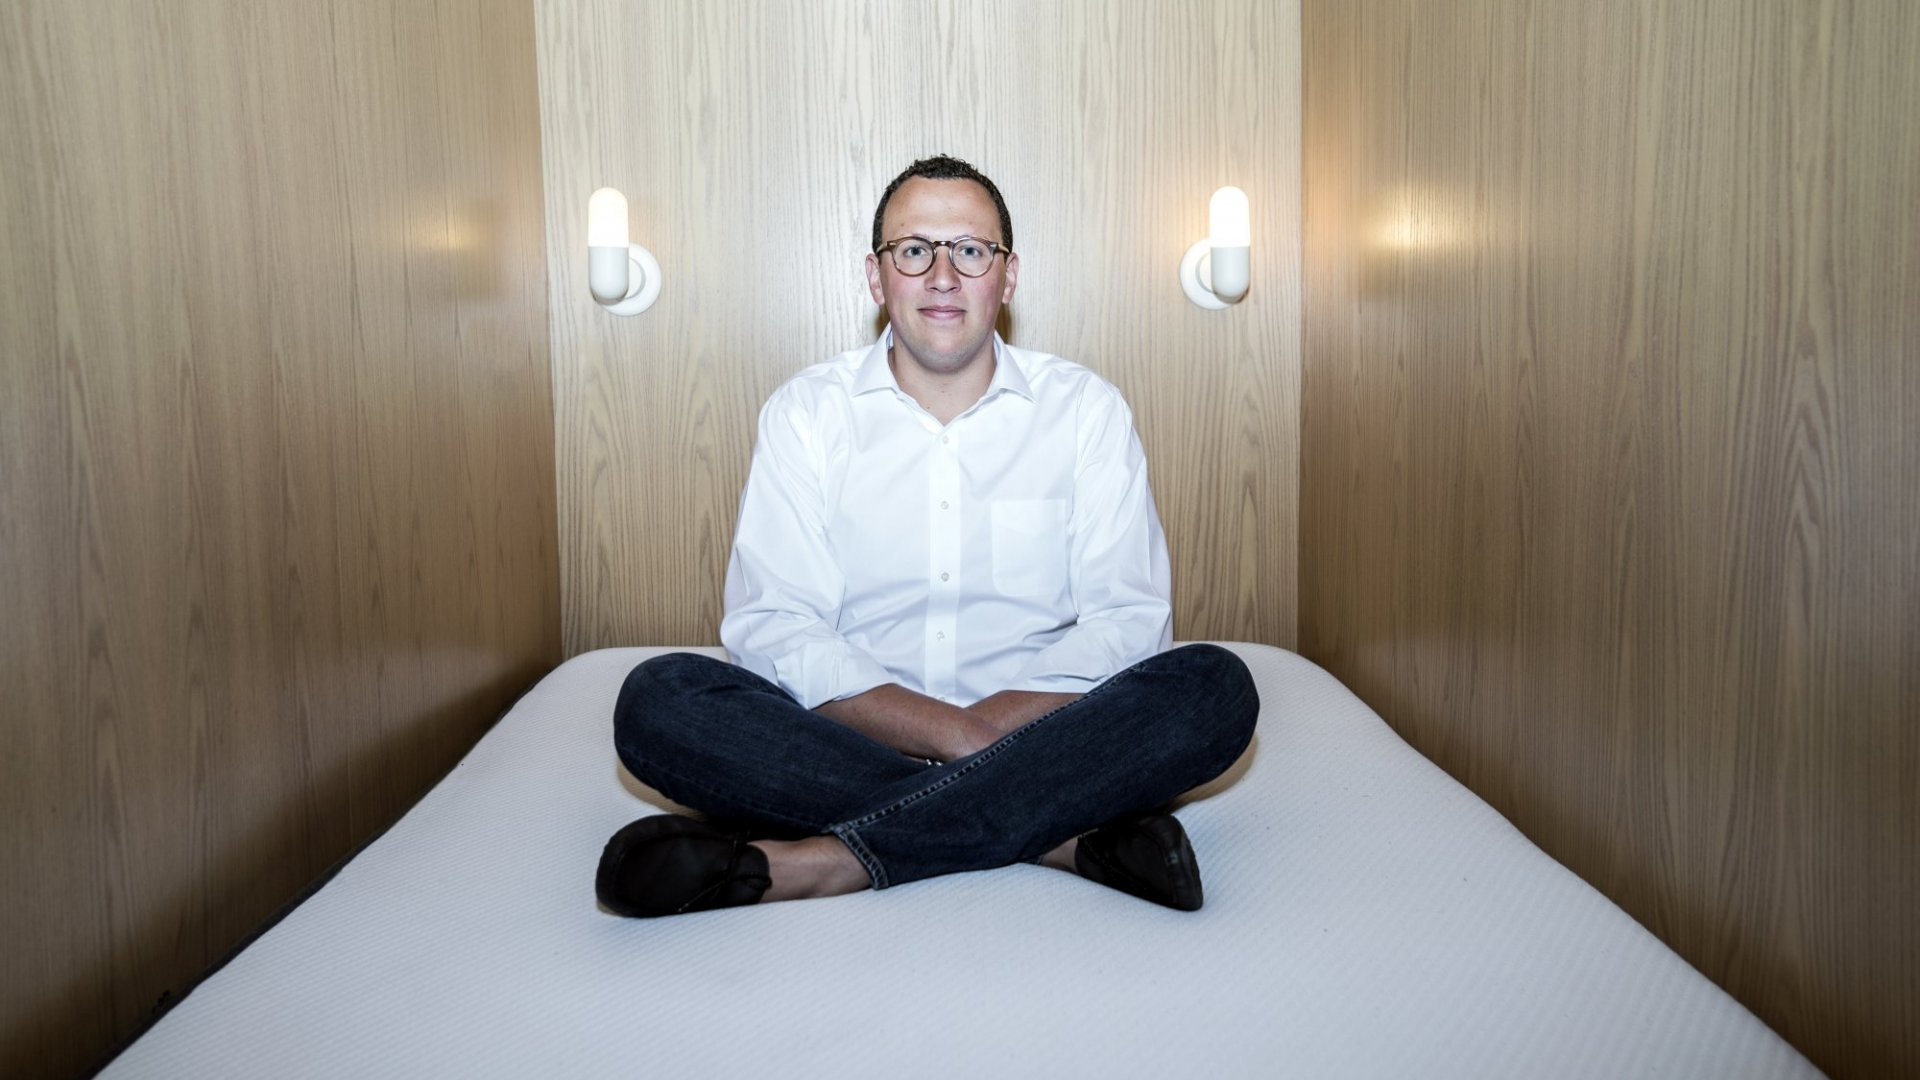 Unicorn Mattress and Sleep Startup Casper Has Filed to Go Public